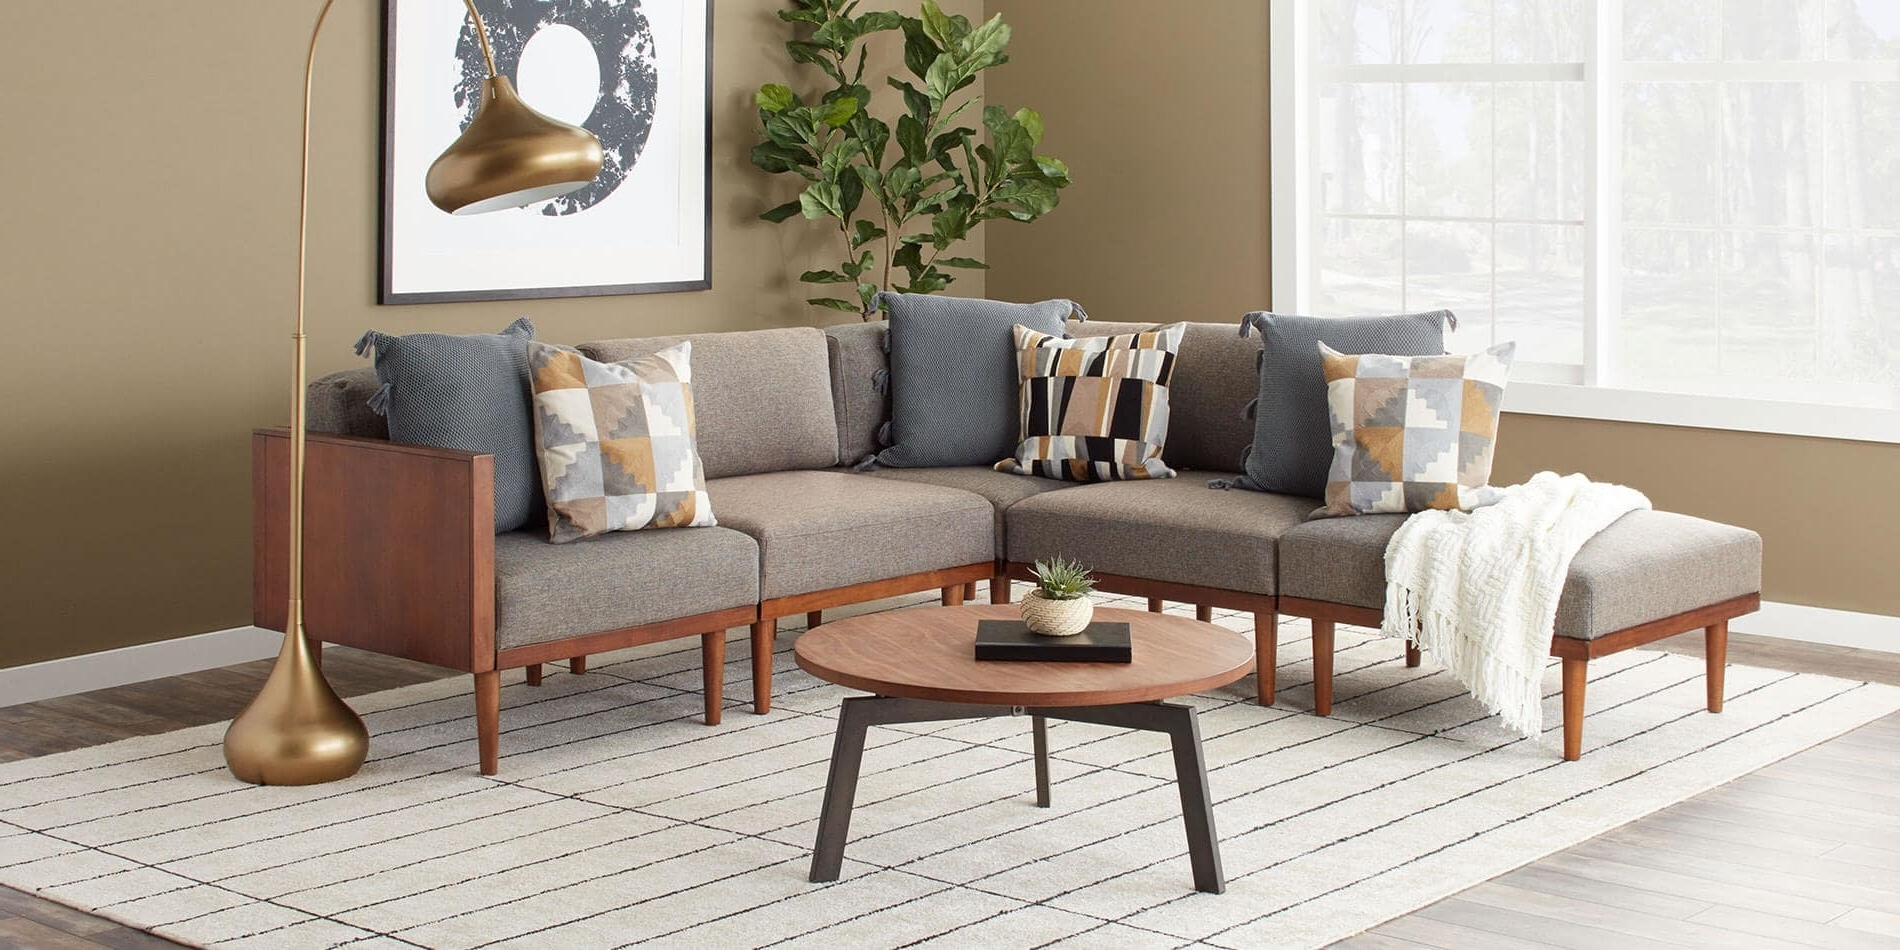 Kitchen : Living Room Cm6156Gy Sect Sectional Best Couchesk For With Most Recent Nh Sectional Sofas (View 8 of 20)